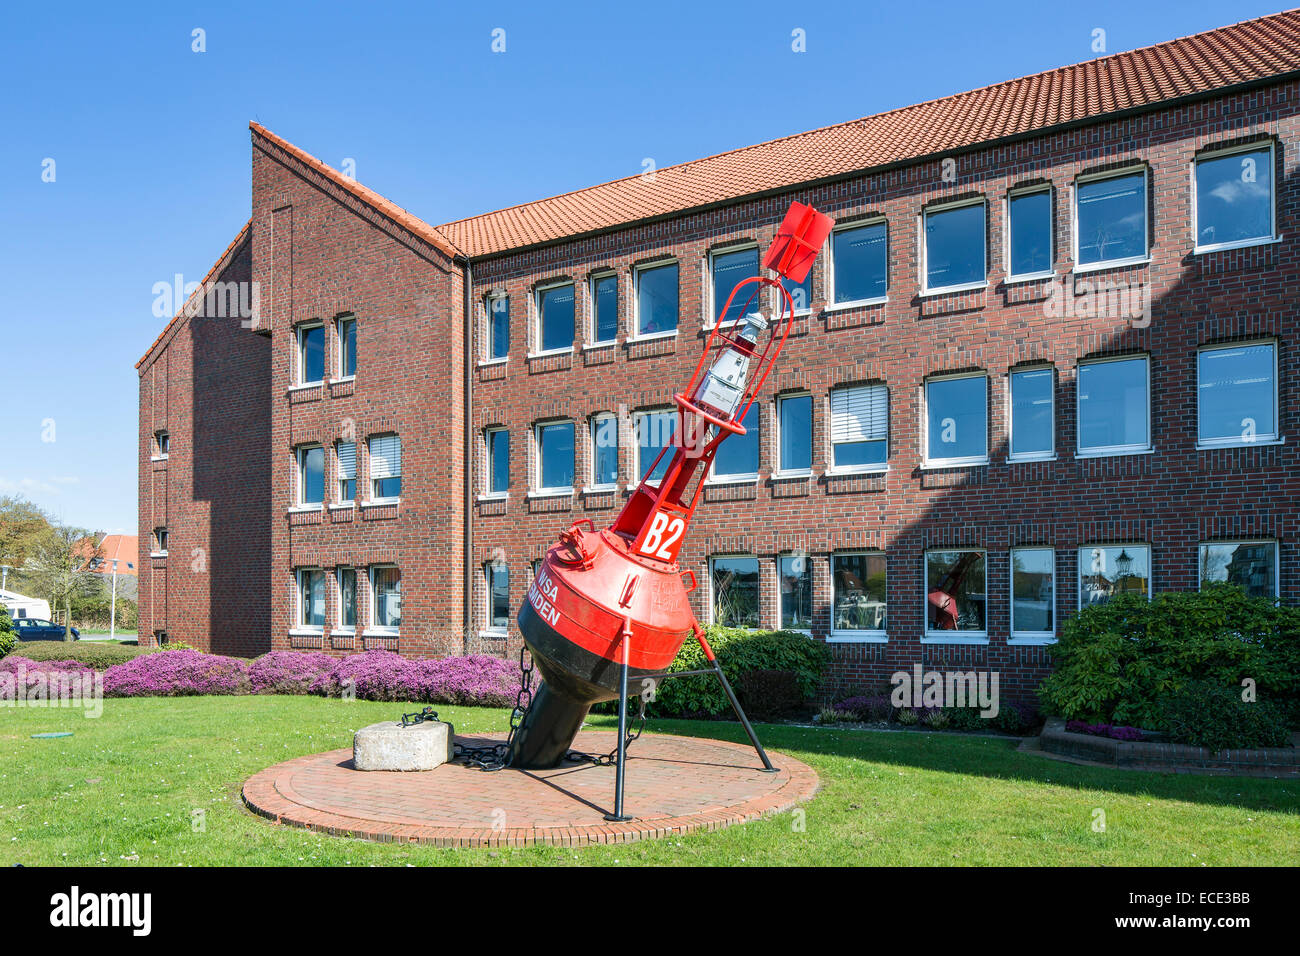 Waterways and Navigation Office, Emden, East Frisia, Lower Saxony, Germany - Stock Image